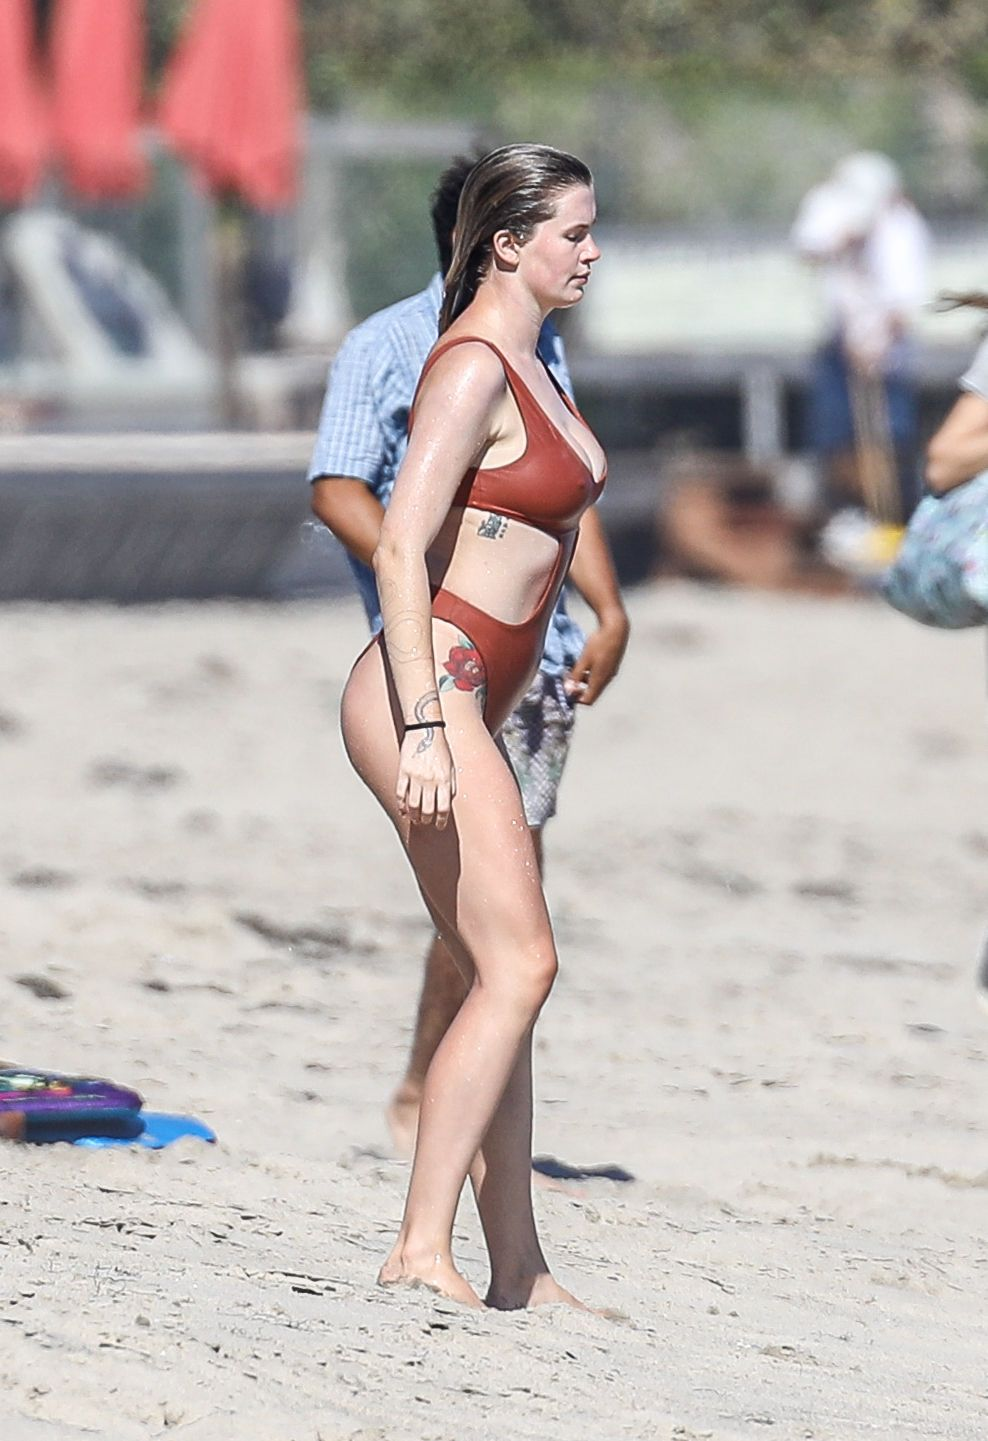 Ireland Baldwin Shows Off Her Pokies on the Beach (62 Photos)